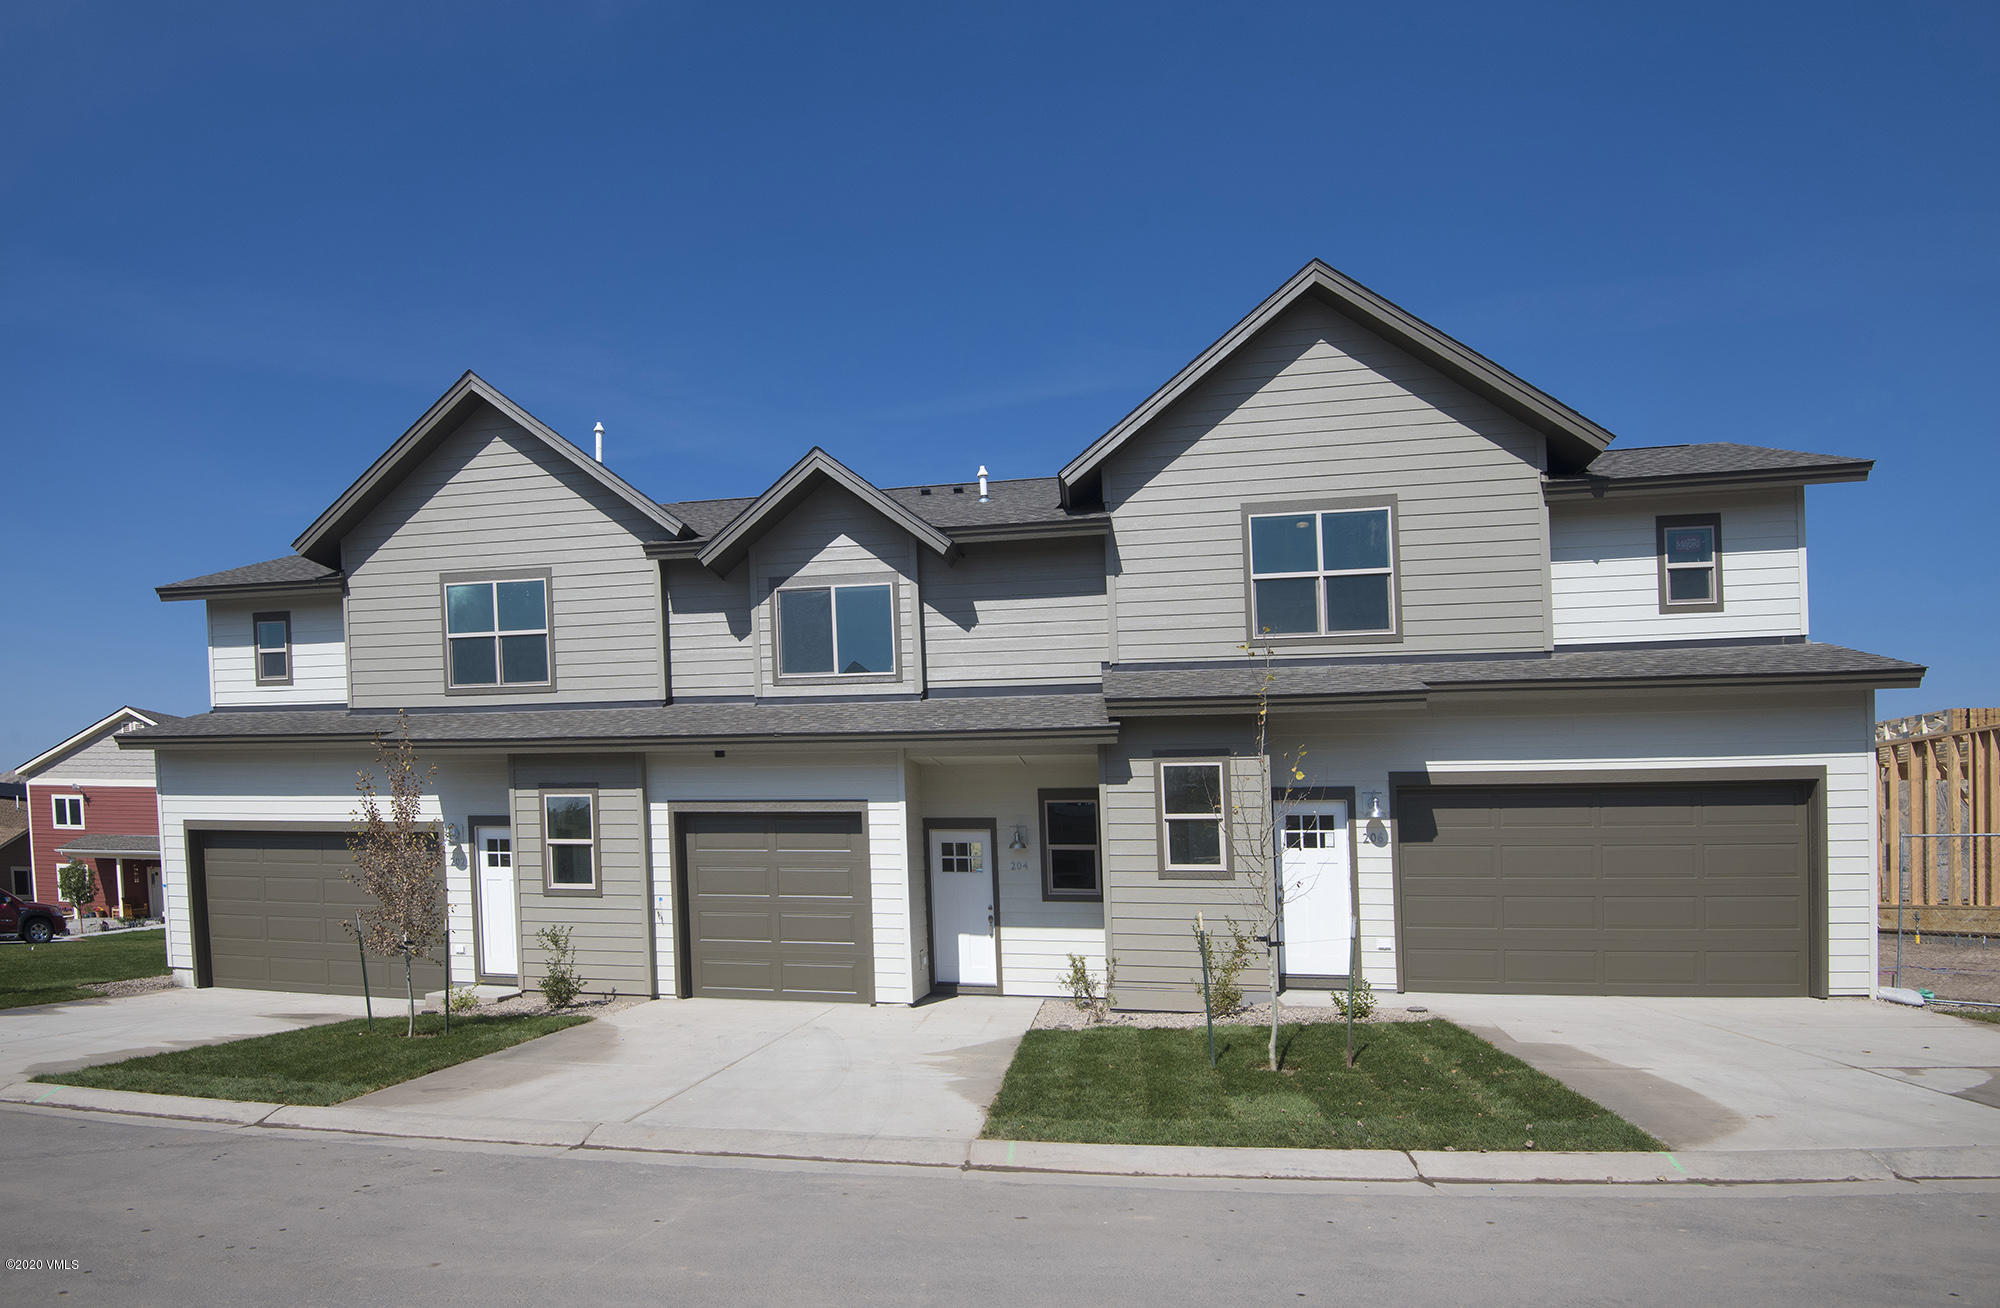 BRAND NEW TOWNHOME! Now Under Construction! Well-designed, site-built, 3 bedroom, 2.5 bath home with an attached 2-car garage. Incredibly convenient location close to Costco, Gypsum Rec Ctr, and Eagle County Airport. Only minutes to world-class recreation of all types. Standard finishes include vaulted ceilings, LVT flooring, quartz countertops, kitchen pantry, & stainless steel appliances. Laundry room conveniently located on the bedroom level. This is an end unit, offers plenty of light, and had an incredible side and back yard!